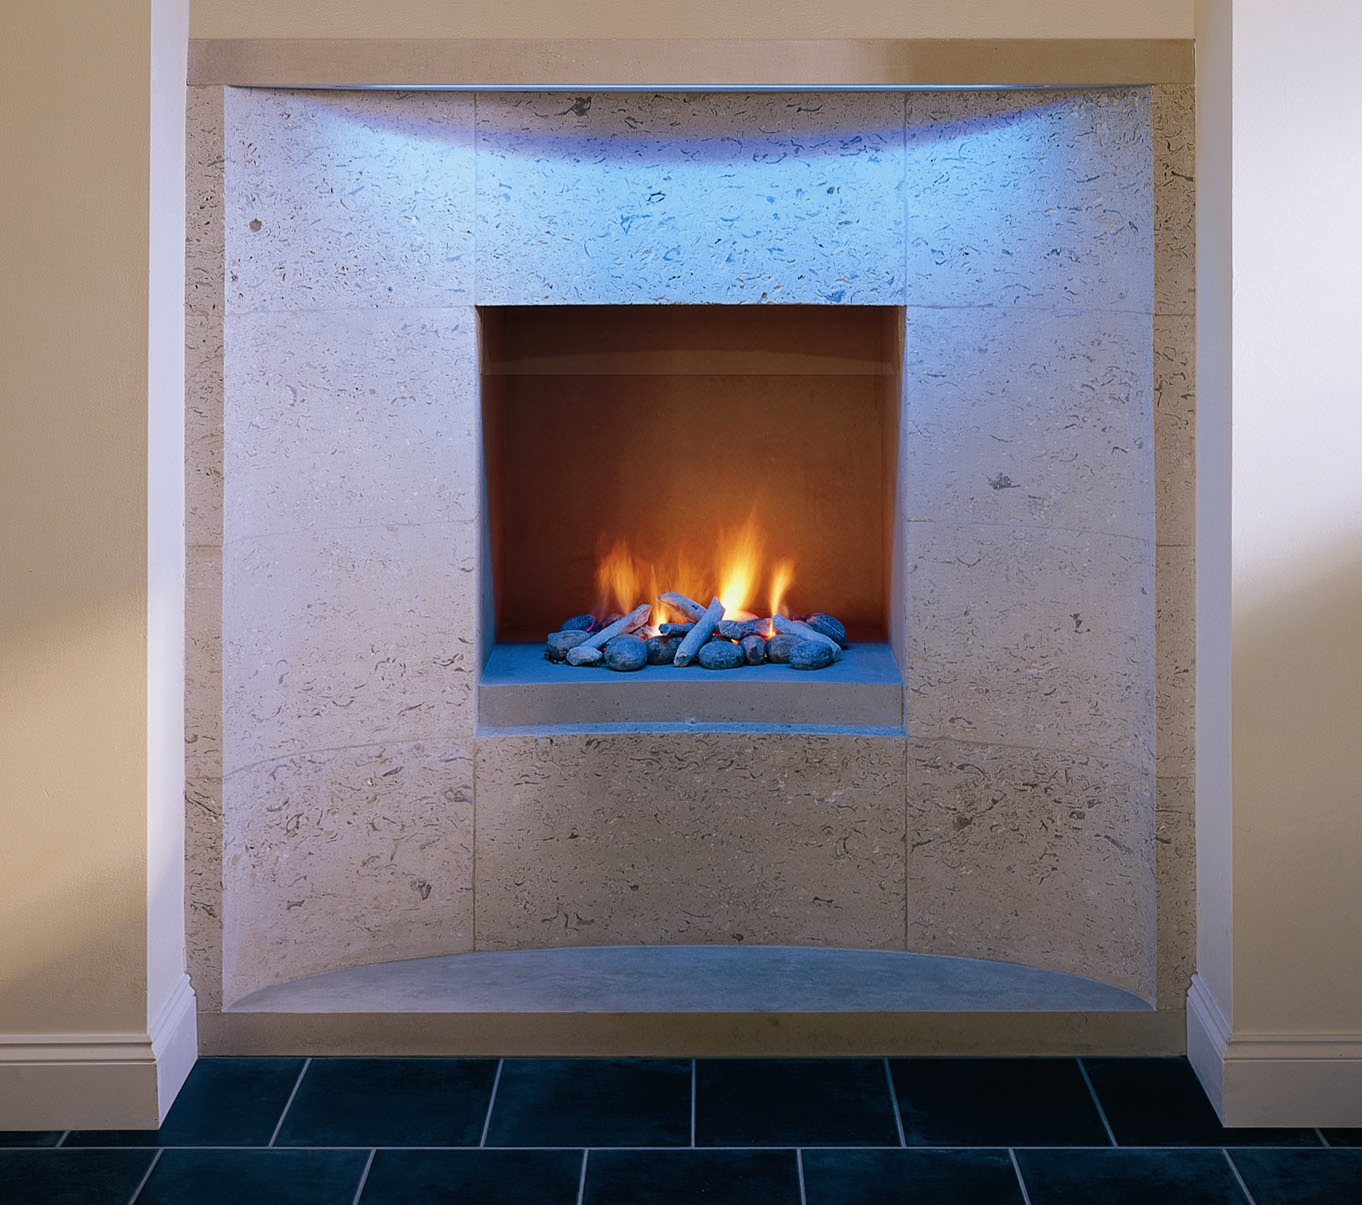 3. Portland Roach 'hole in the wall' fireplace with LED lighting – North Wales